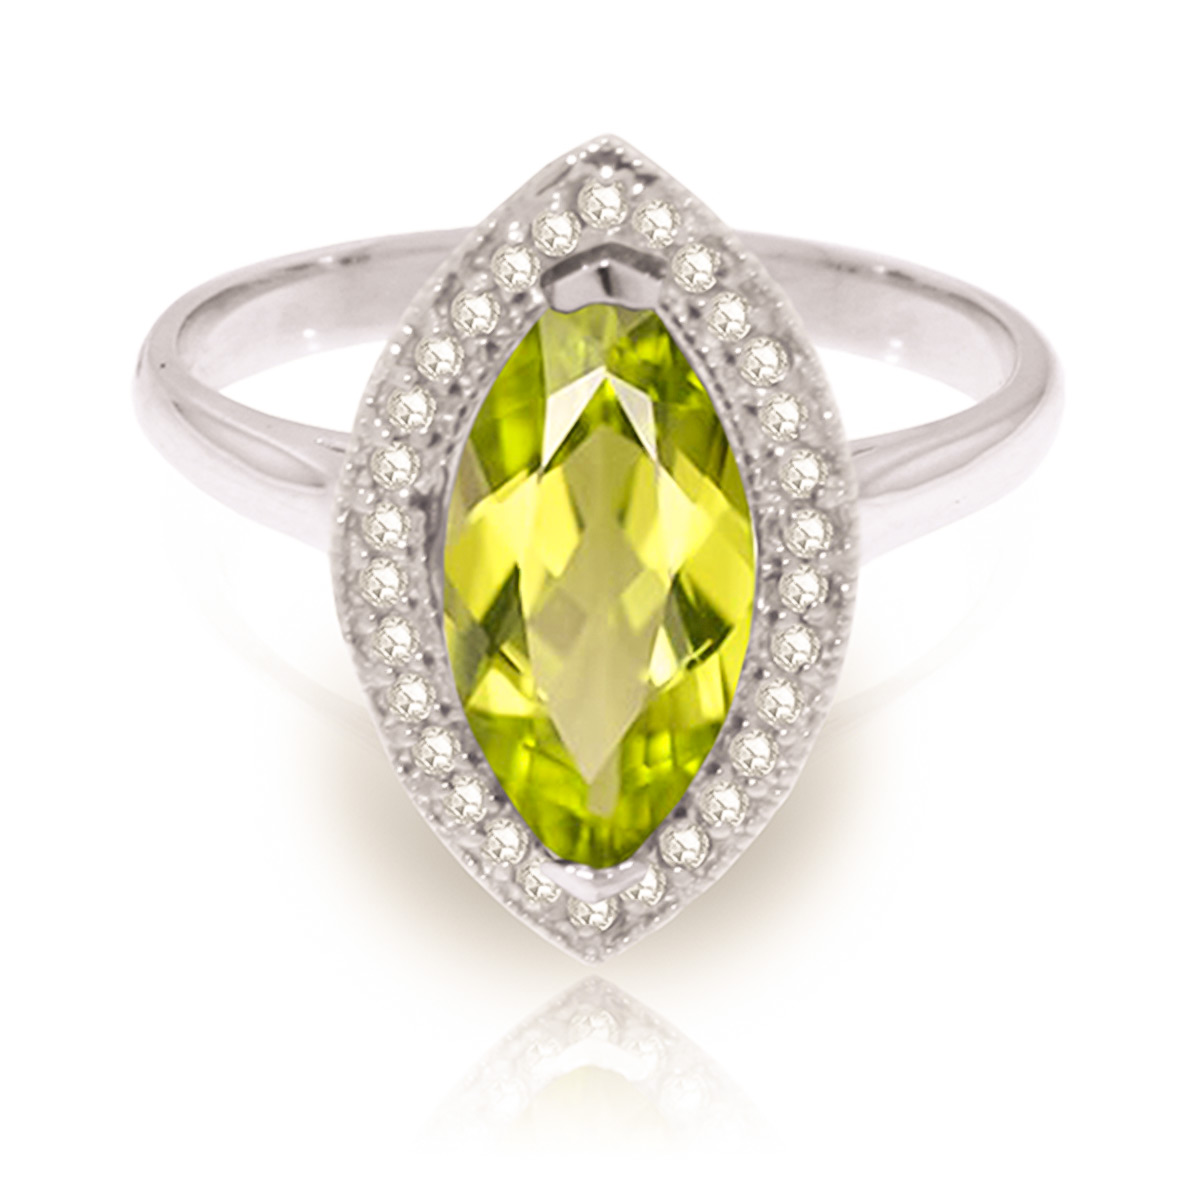 Peridot and Diamond Halo Ring 2.0ct in 9ct White Gold